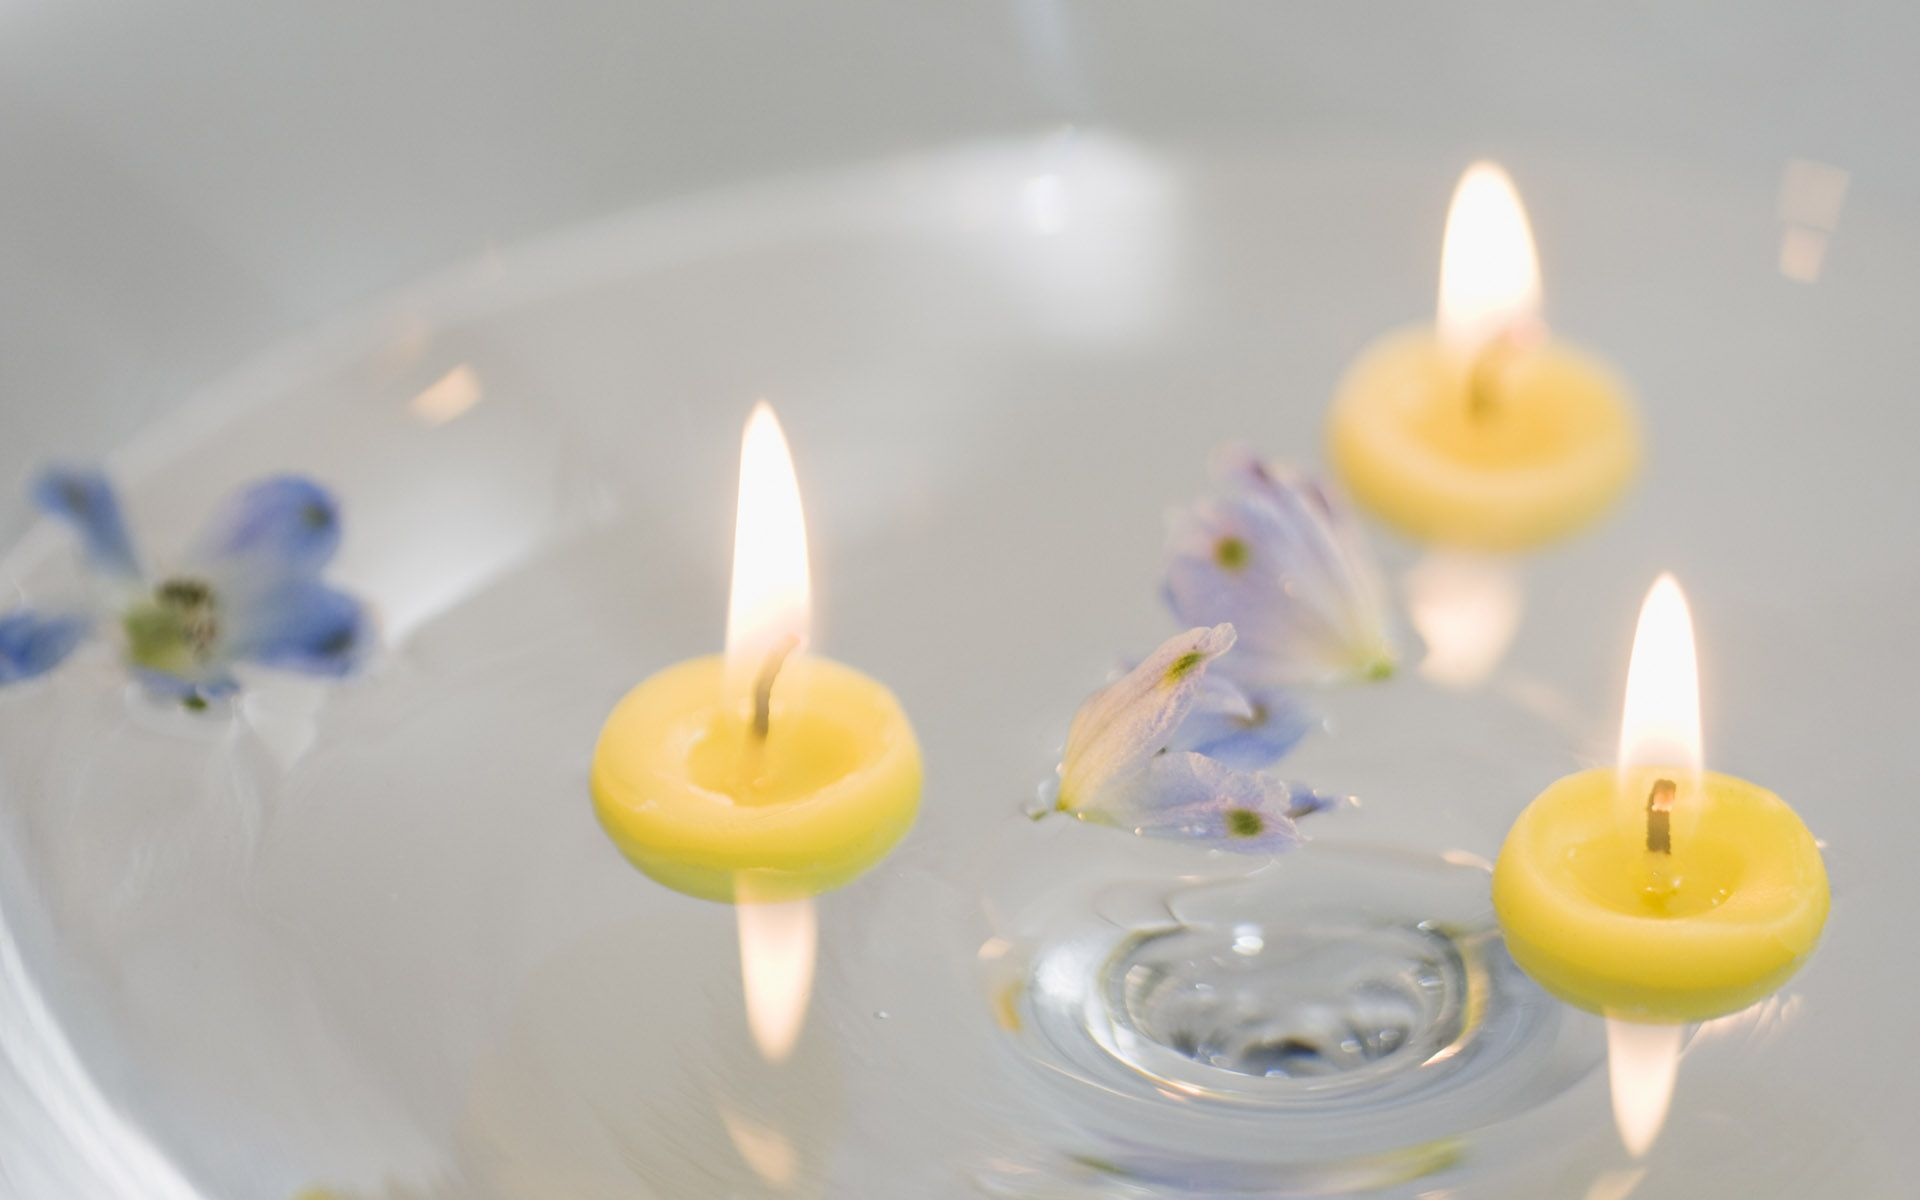 lit candle images